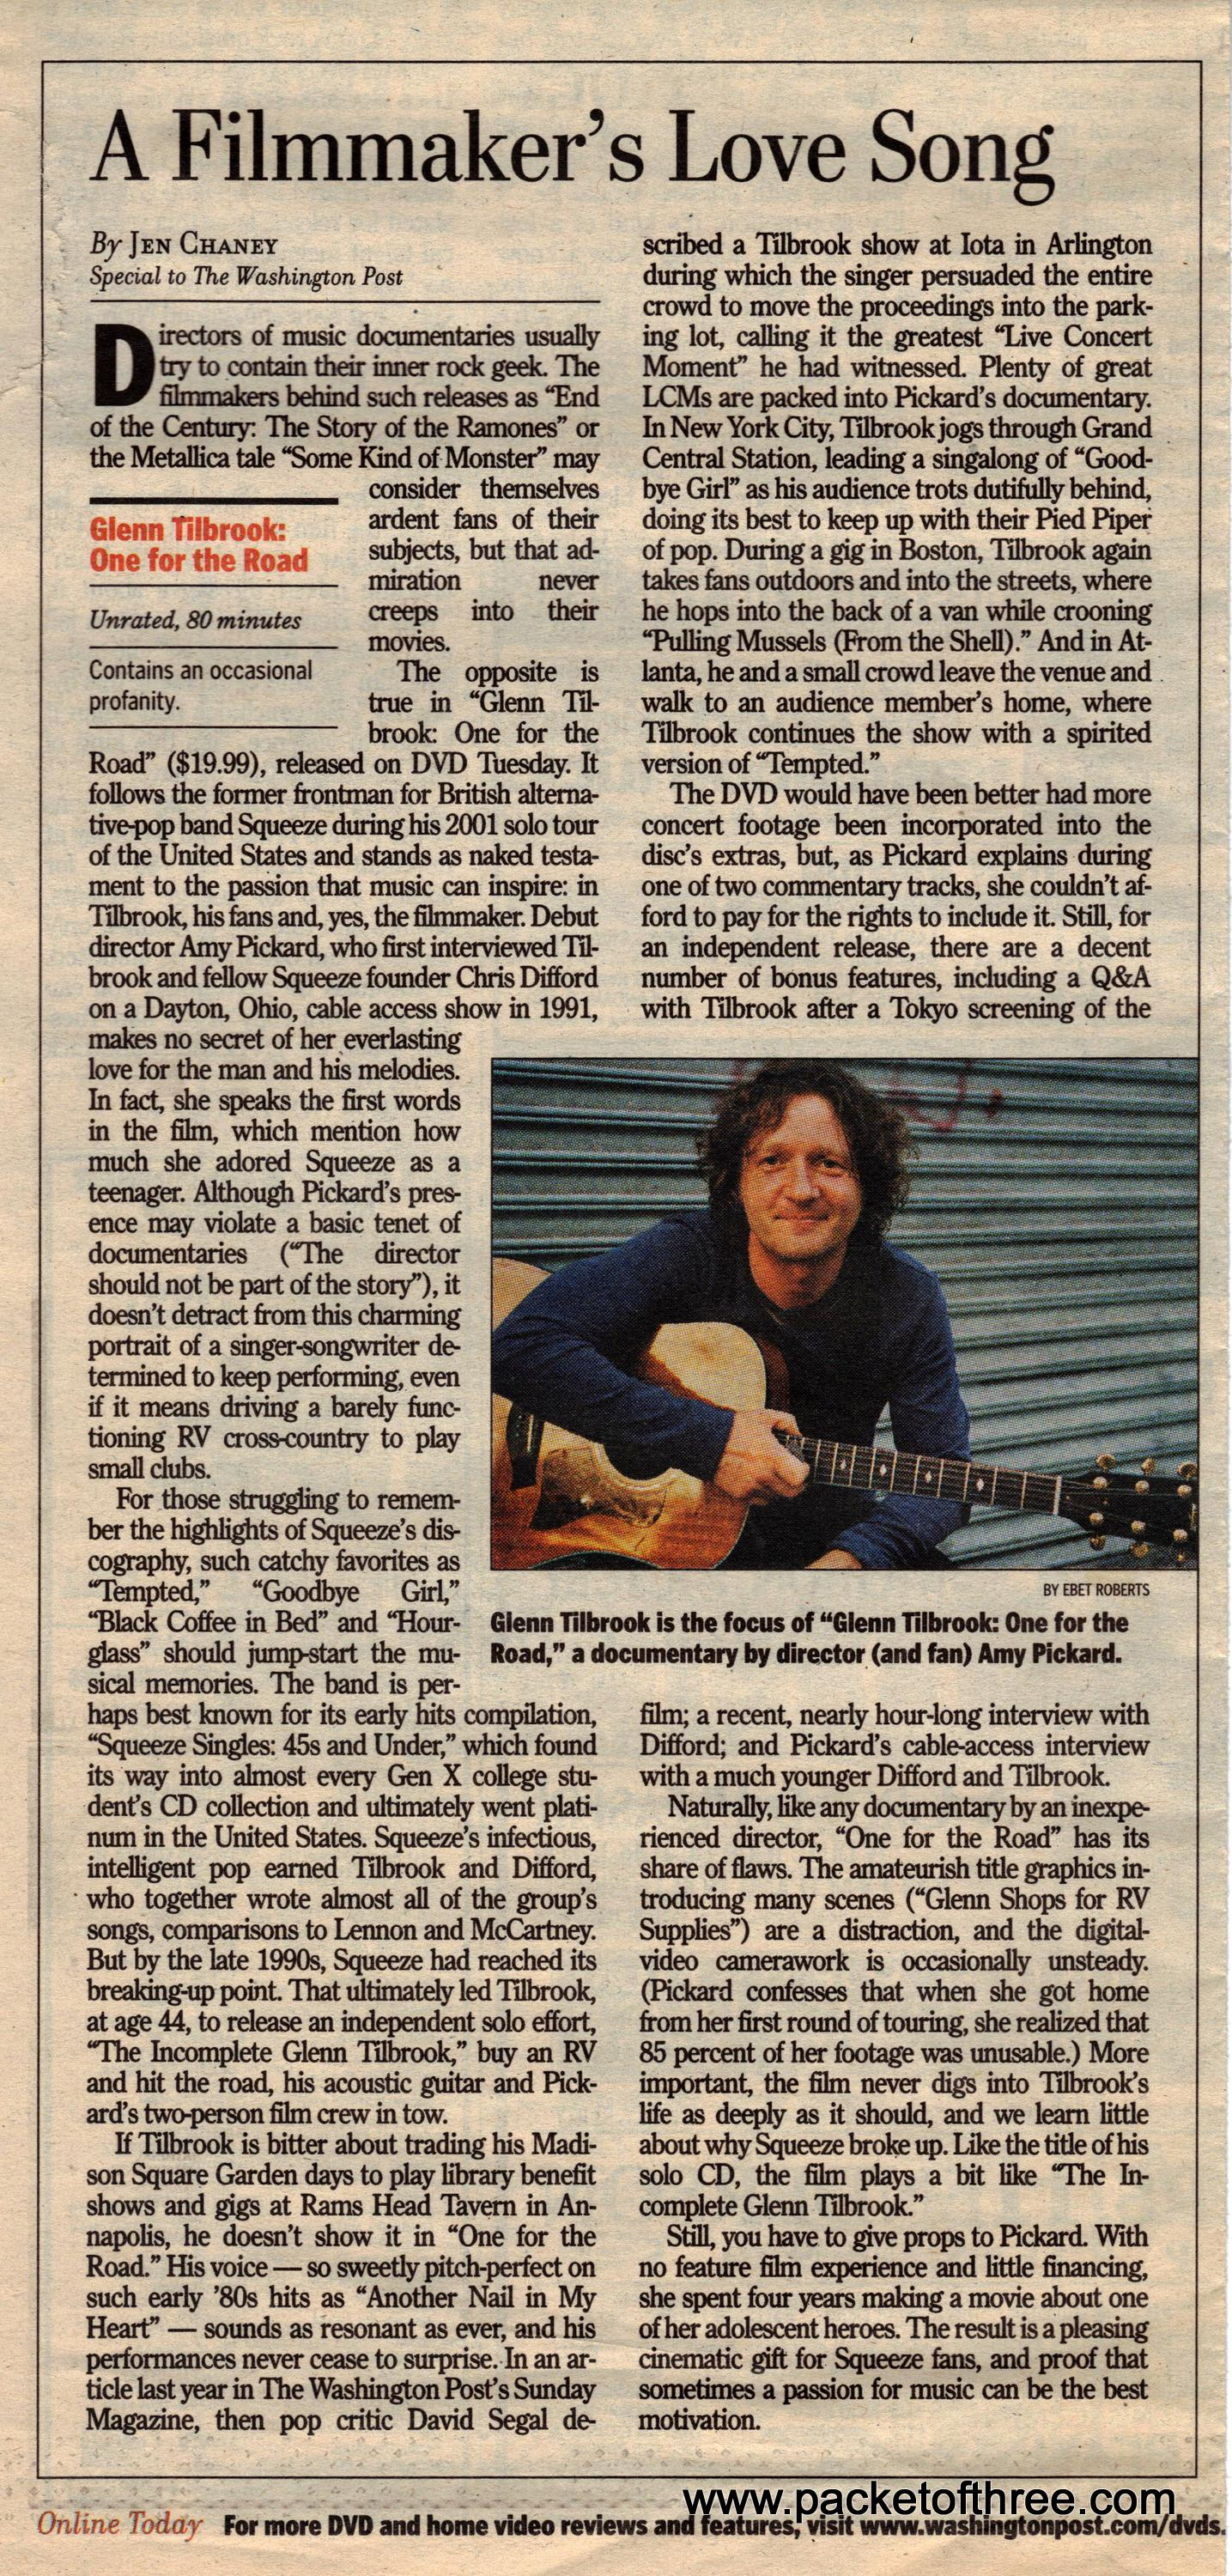 Glenn Tilbrook - 27 January 2006 - Washington Post review of One for The Road